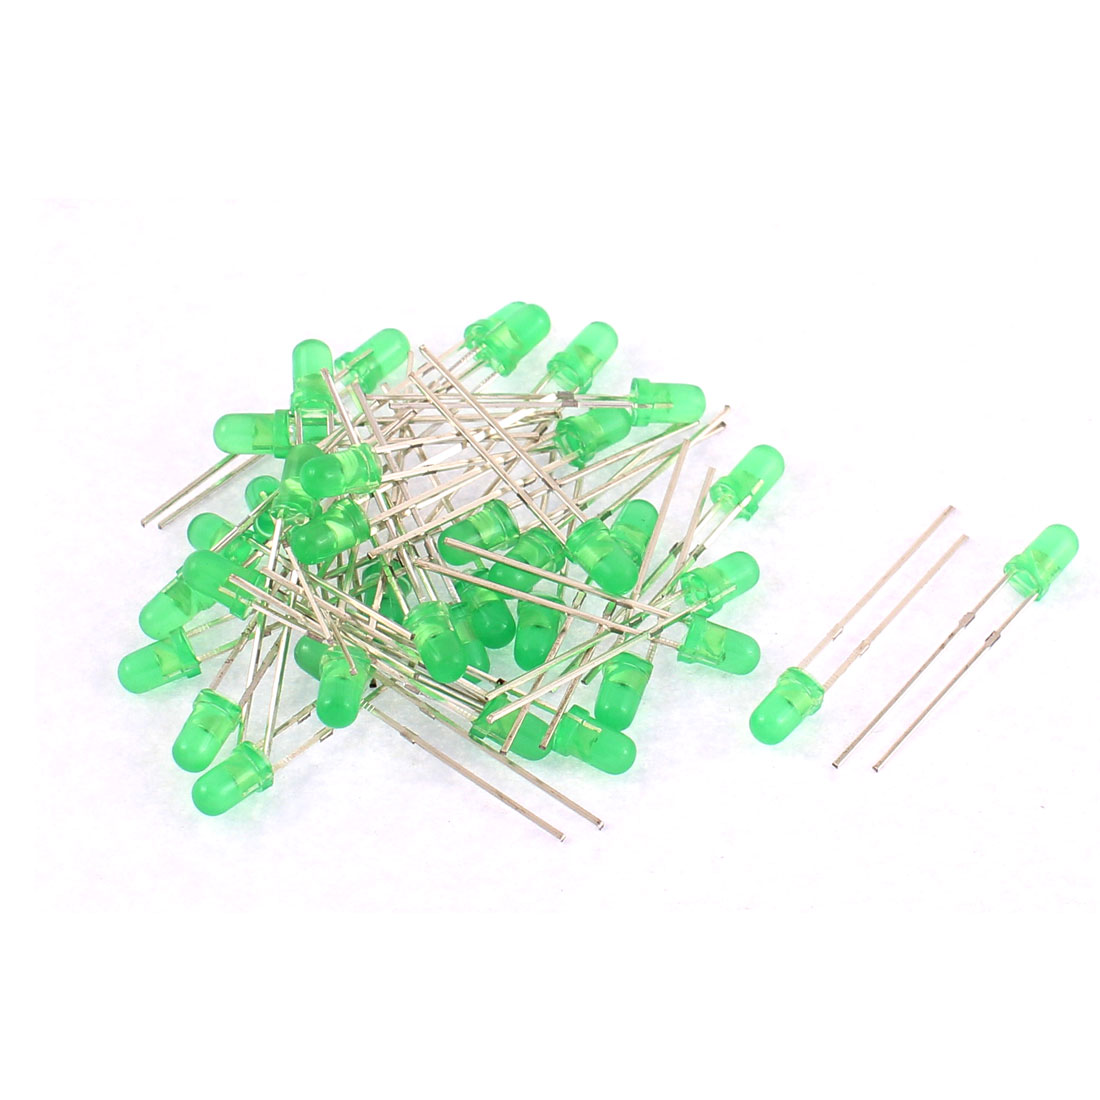 40pcs 3mm Round Green Led Indicator Light-emitting Diode Lamp Bulbs